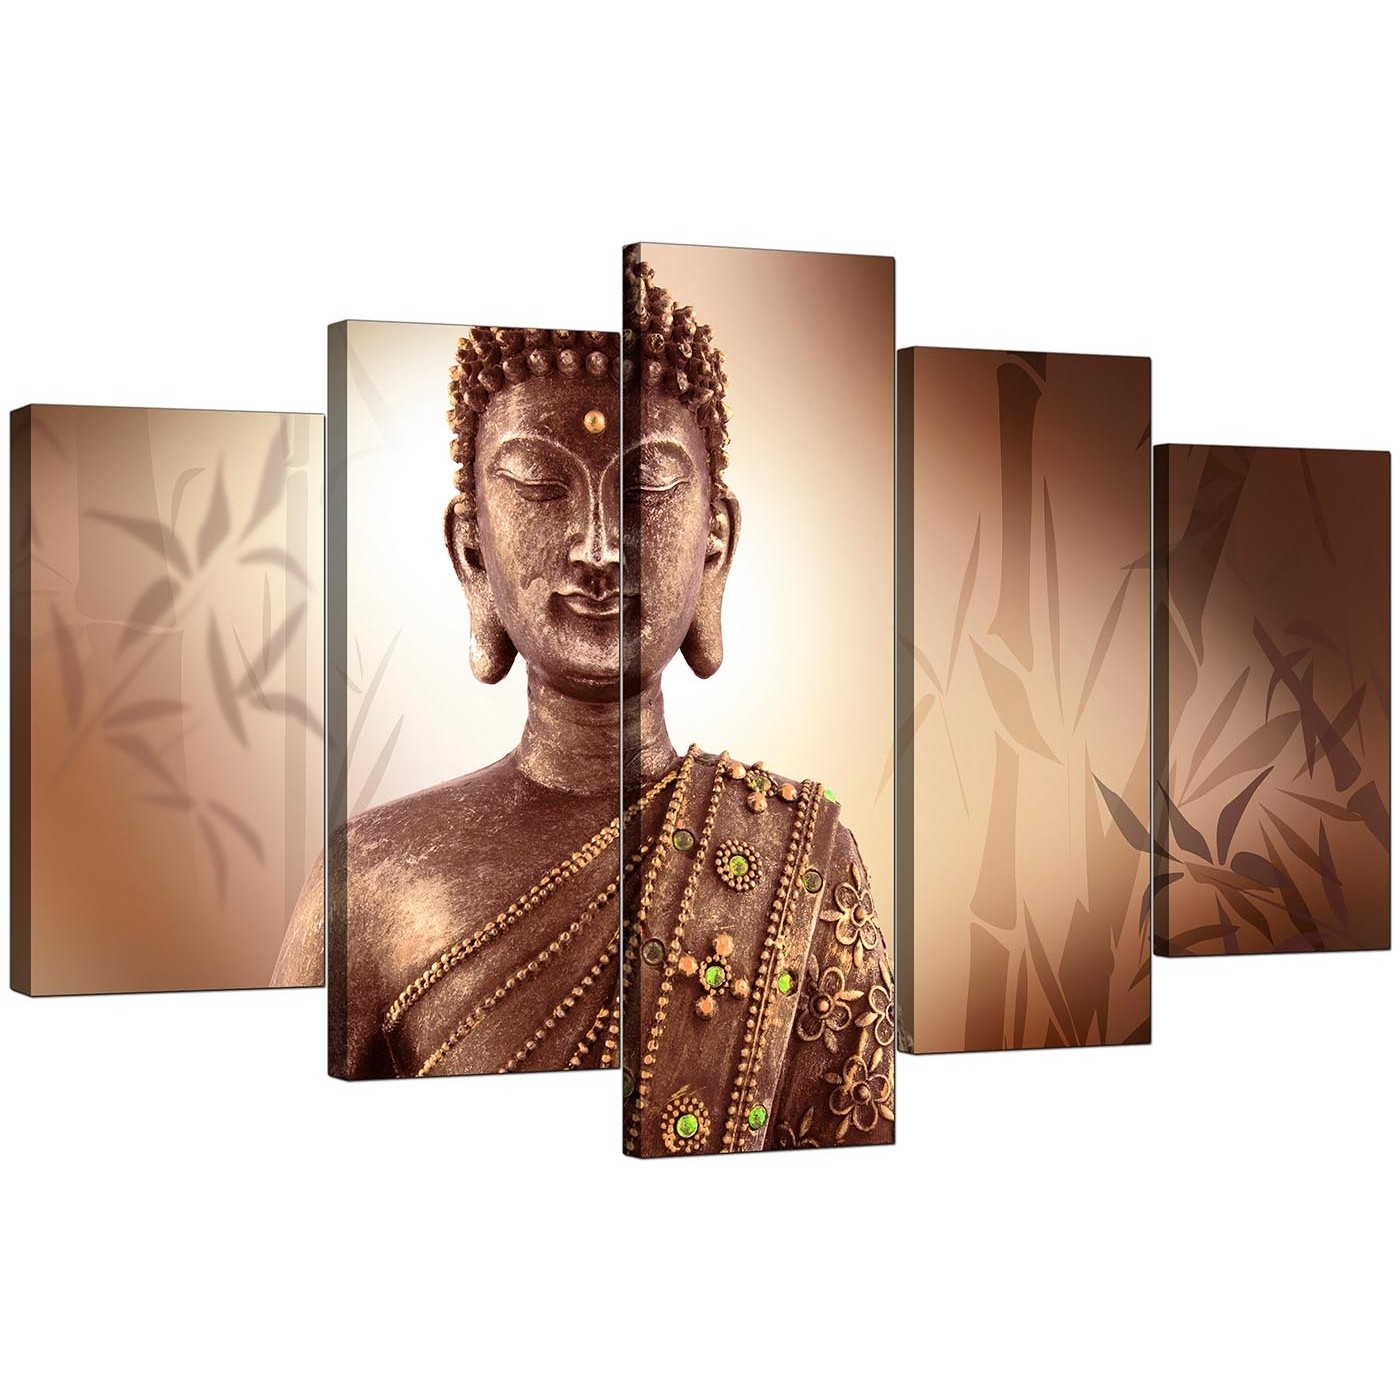 Download Buddha Canvas Wall Art | Himalayantrexplorers Pertaining To Most Current Ethnic Canvas Wall Art (View 7 of 15)